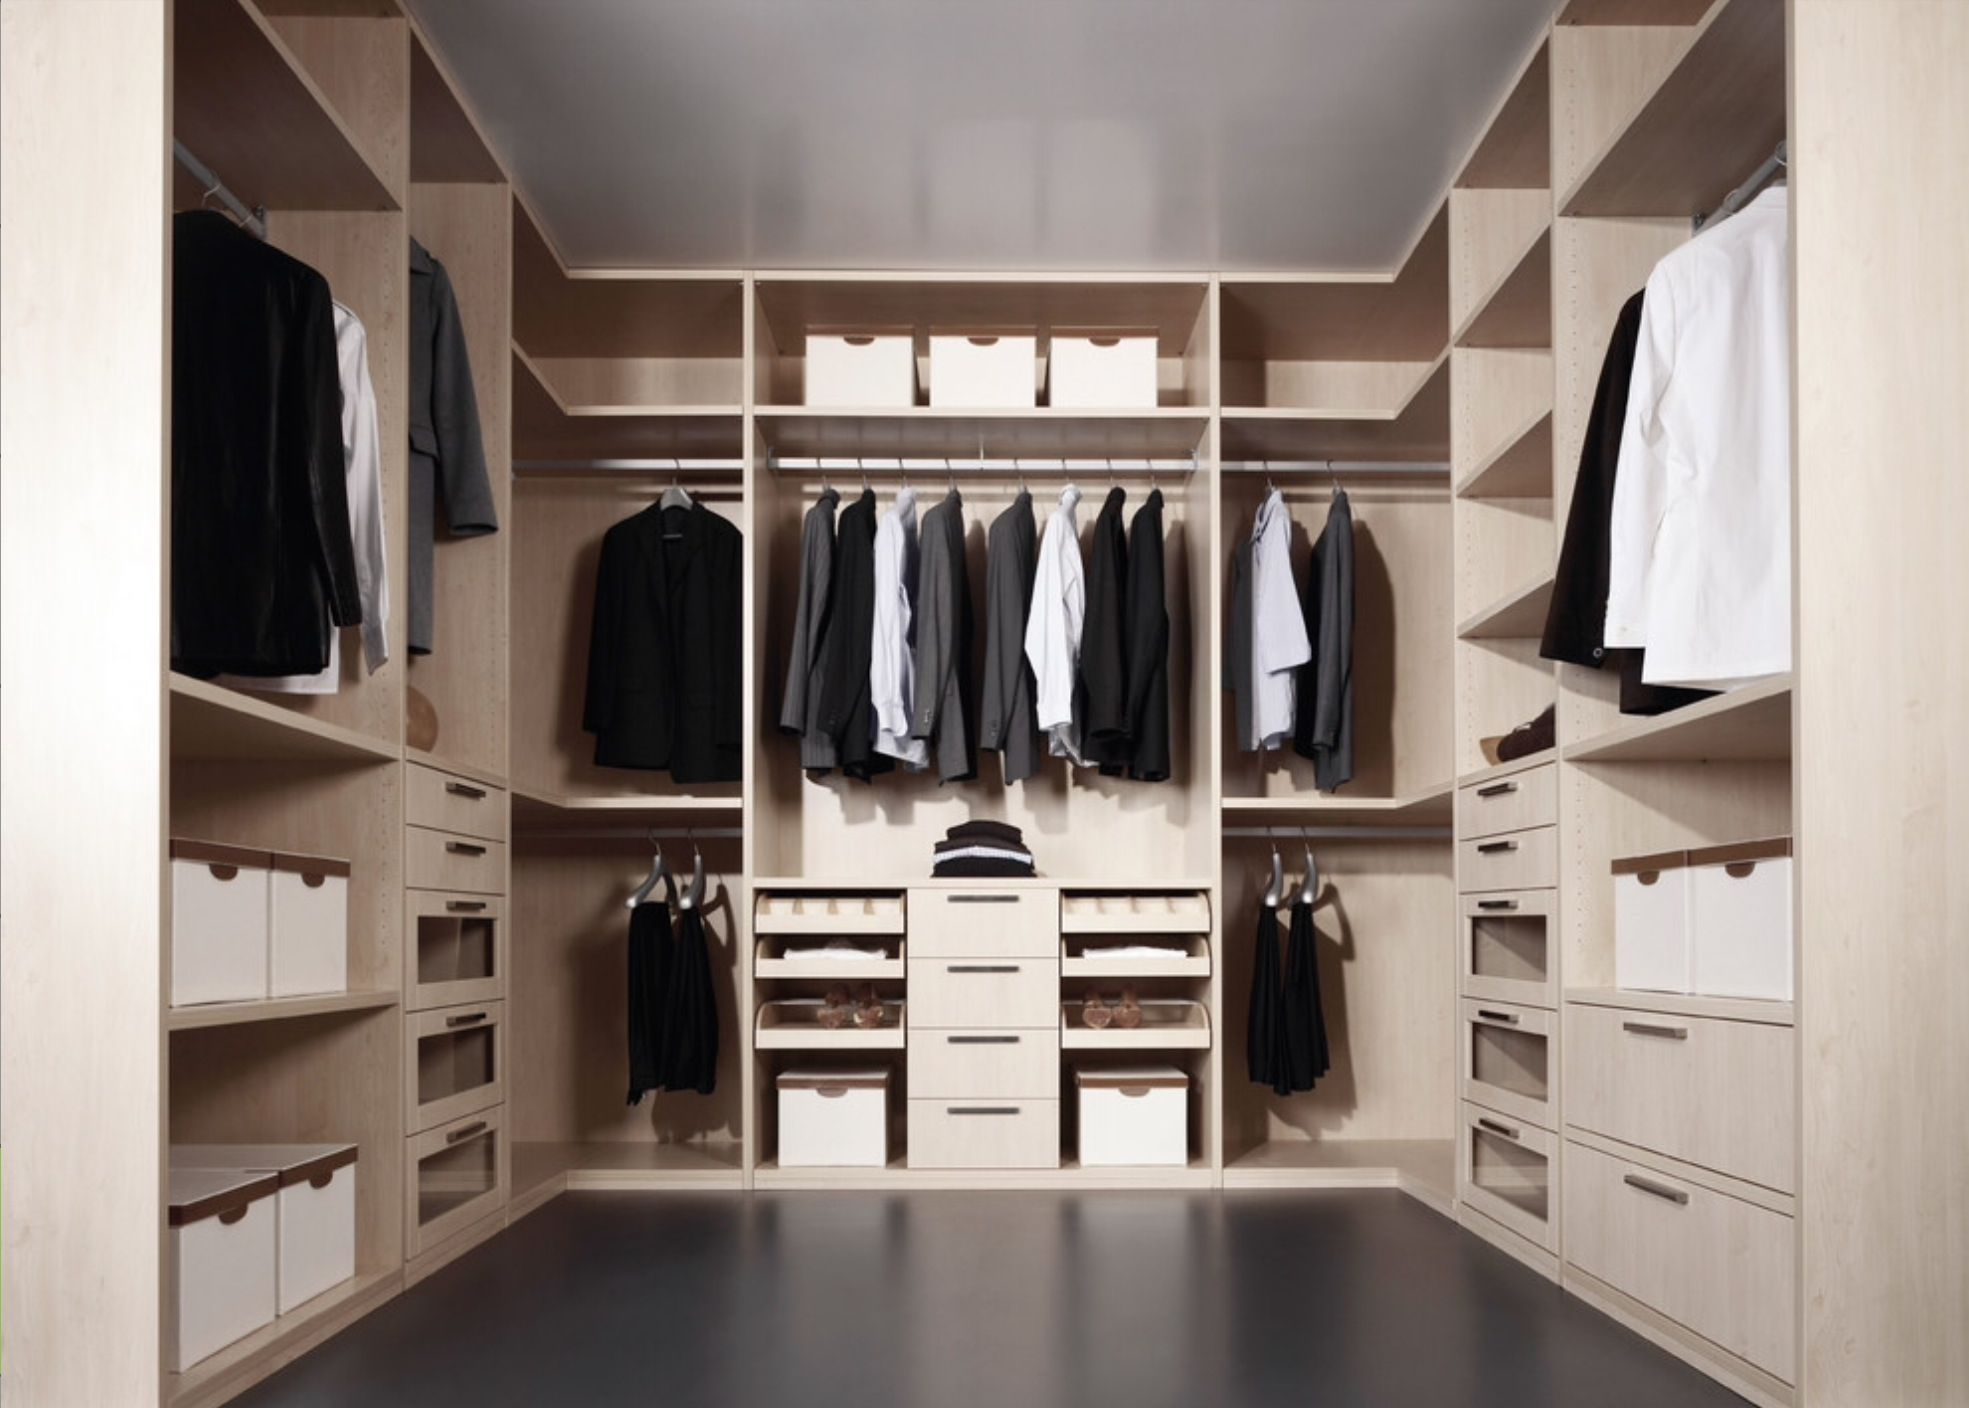 Walk in wardrobe mix of drawers open shelves and Walk in closet design